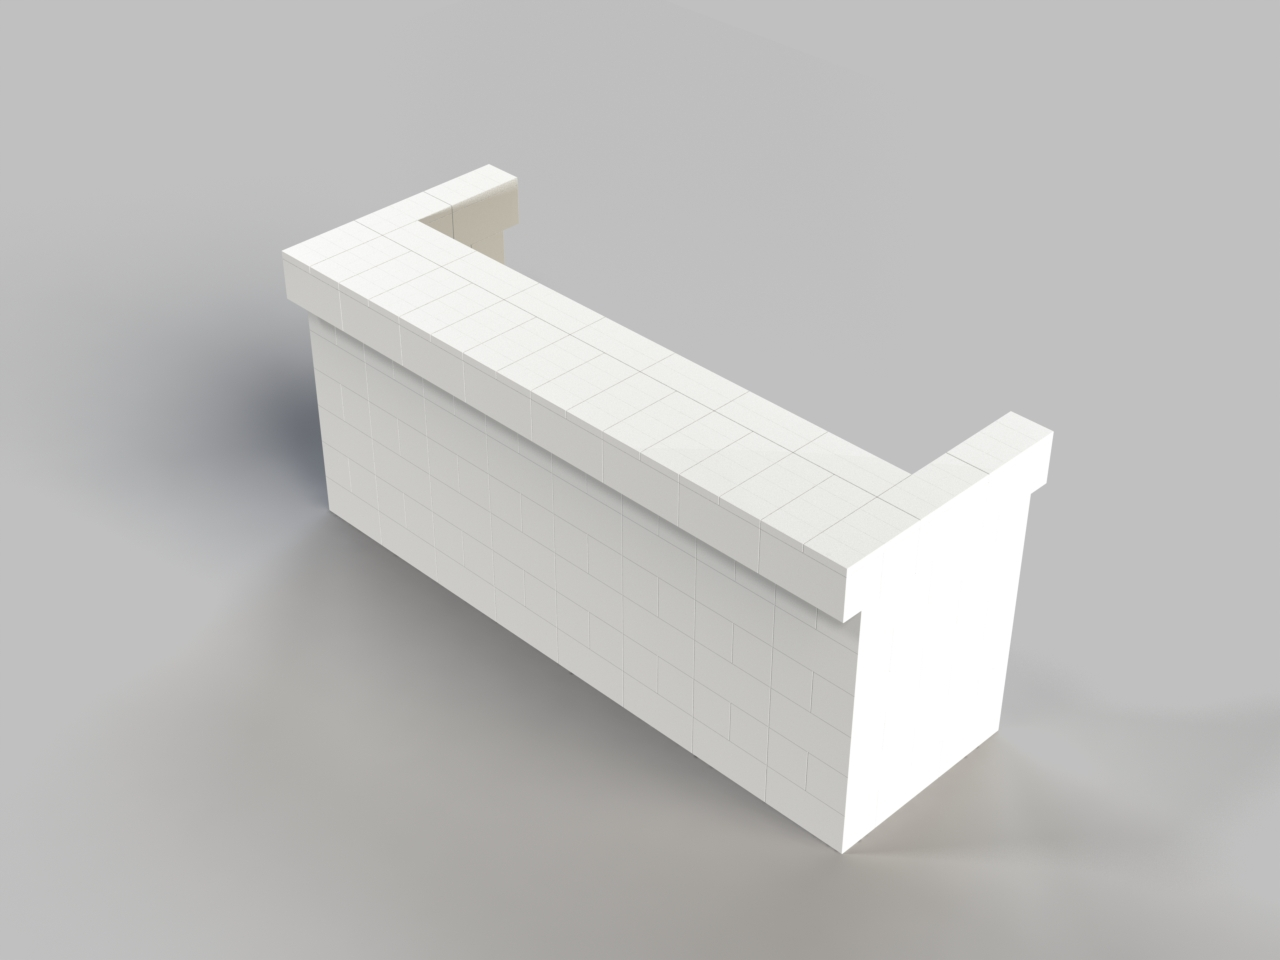 8ft, 1 Layer, Front Cantilever Bar